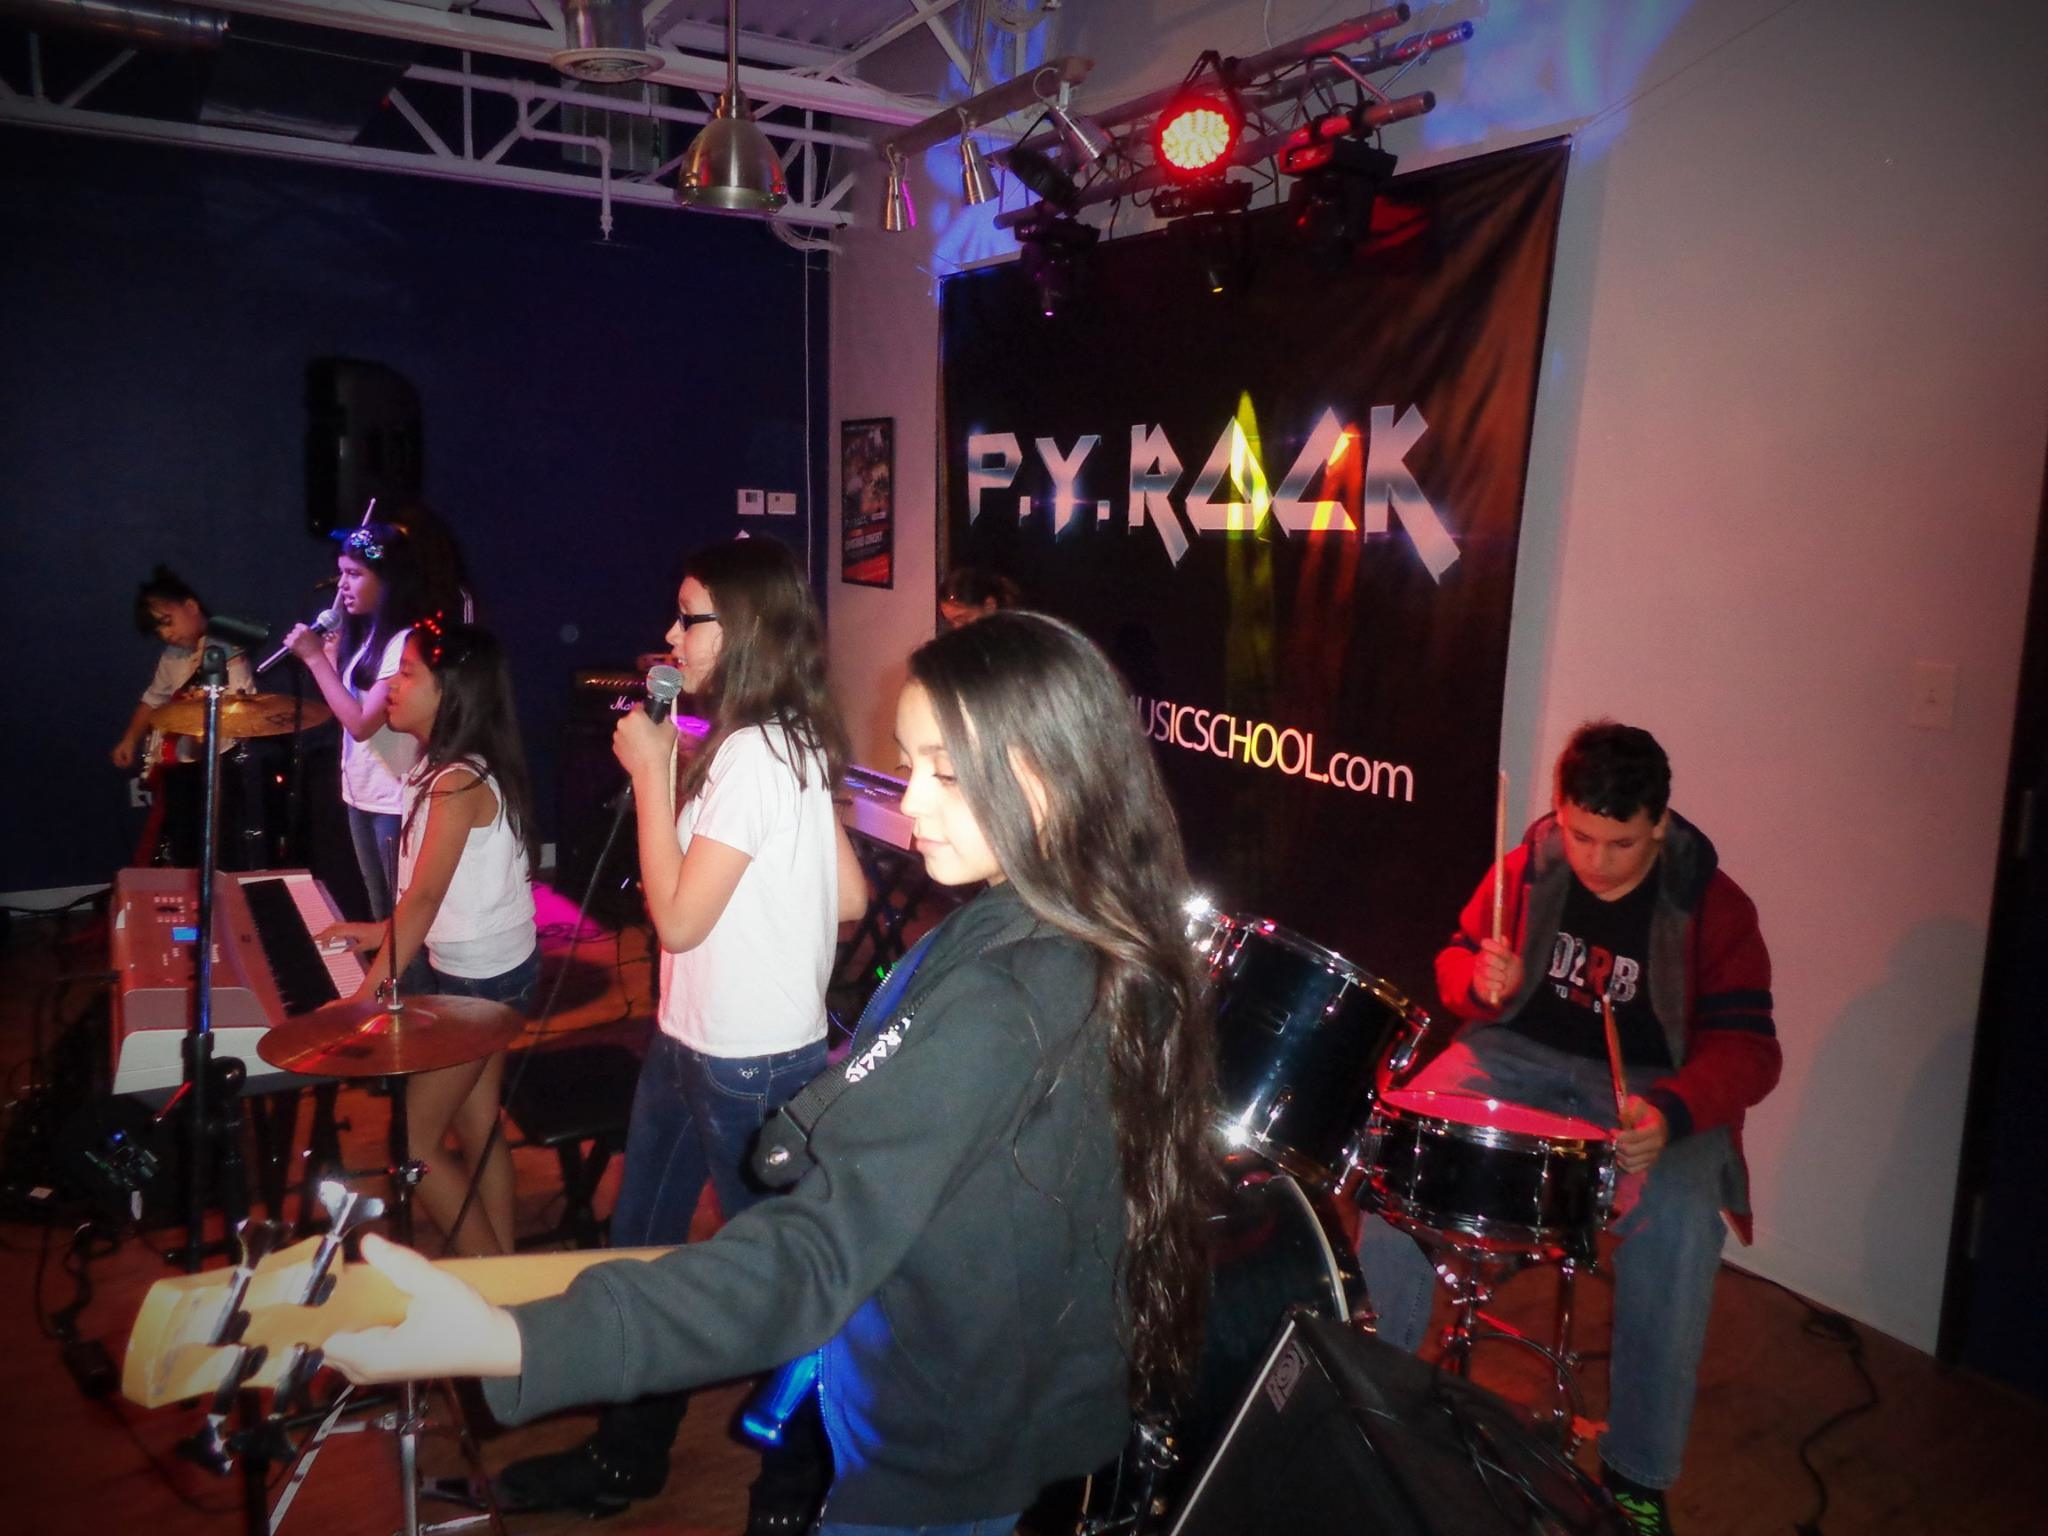 PY ROCK MUSIC SCHOOL image 4